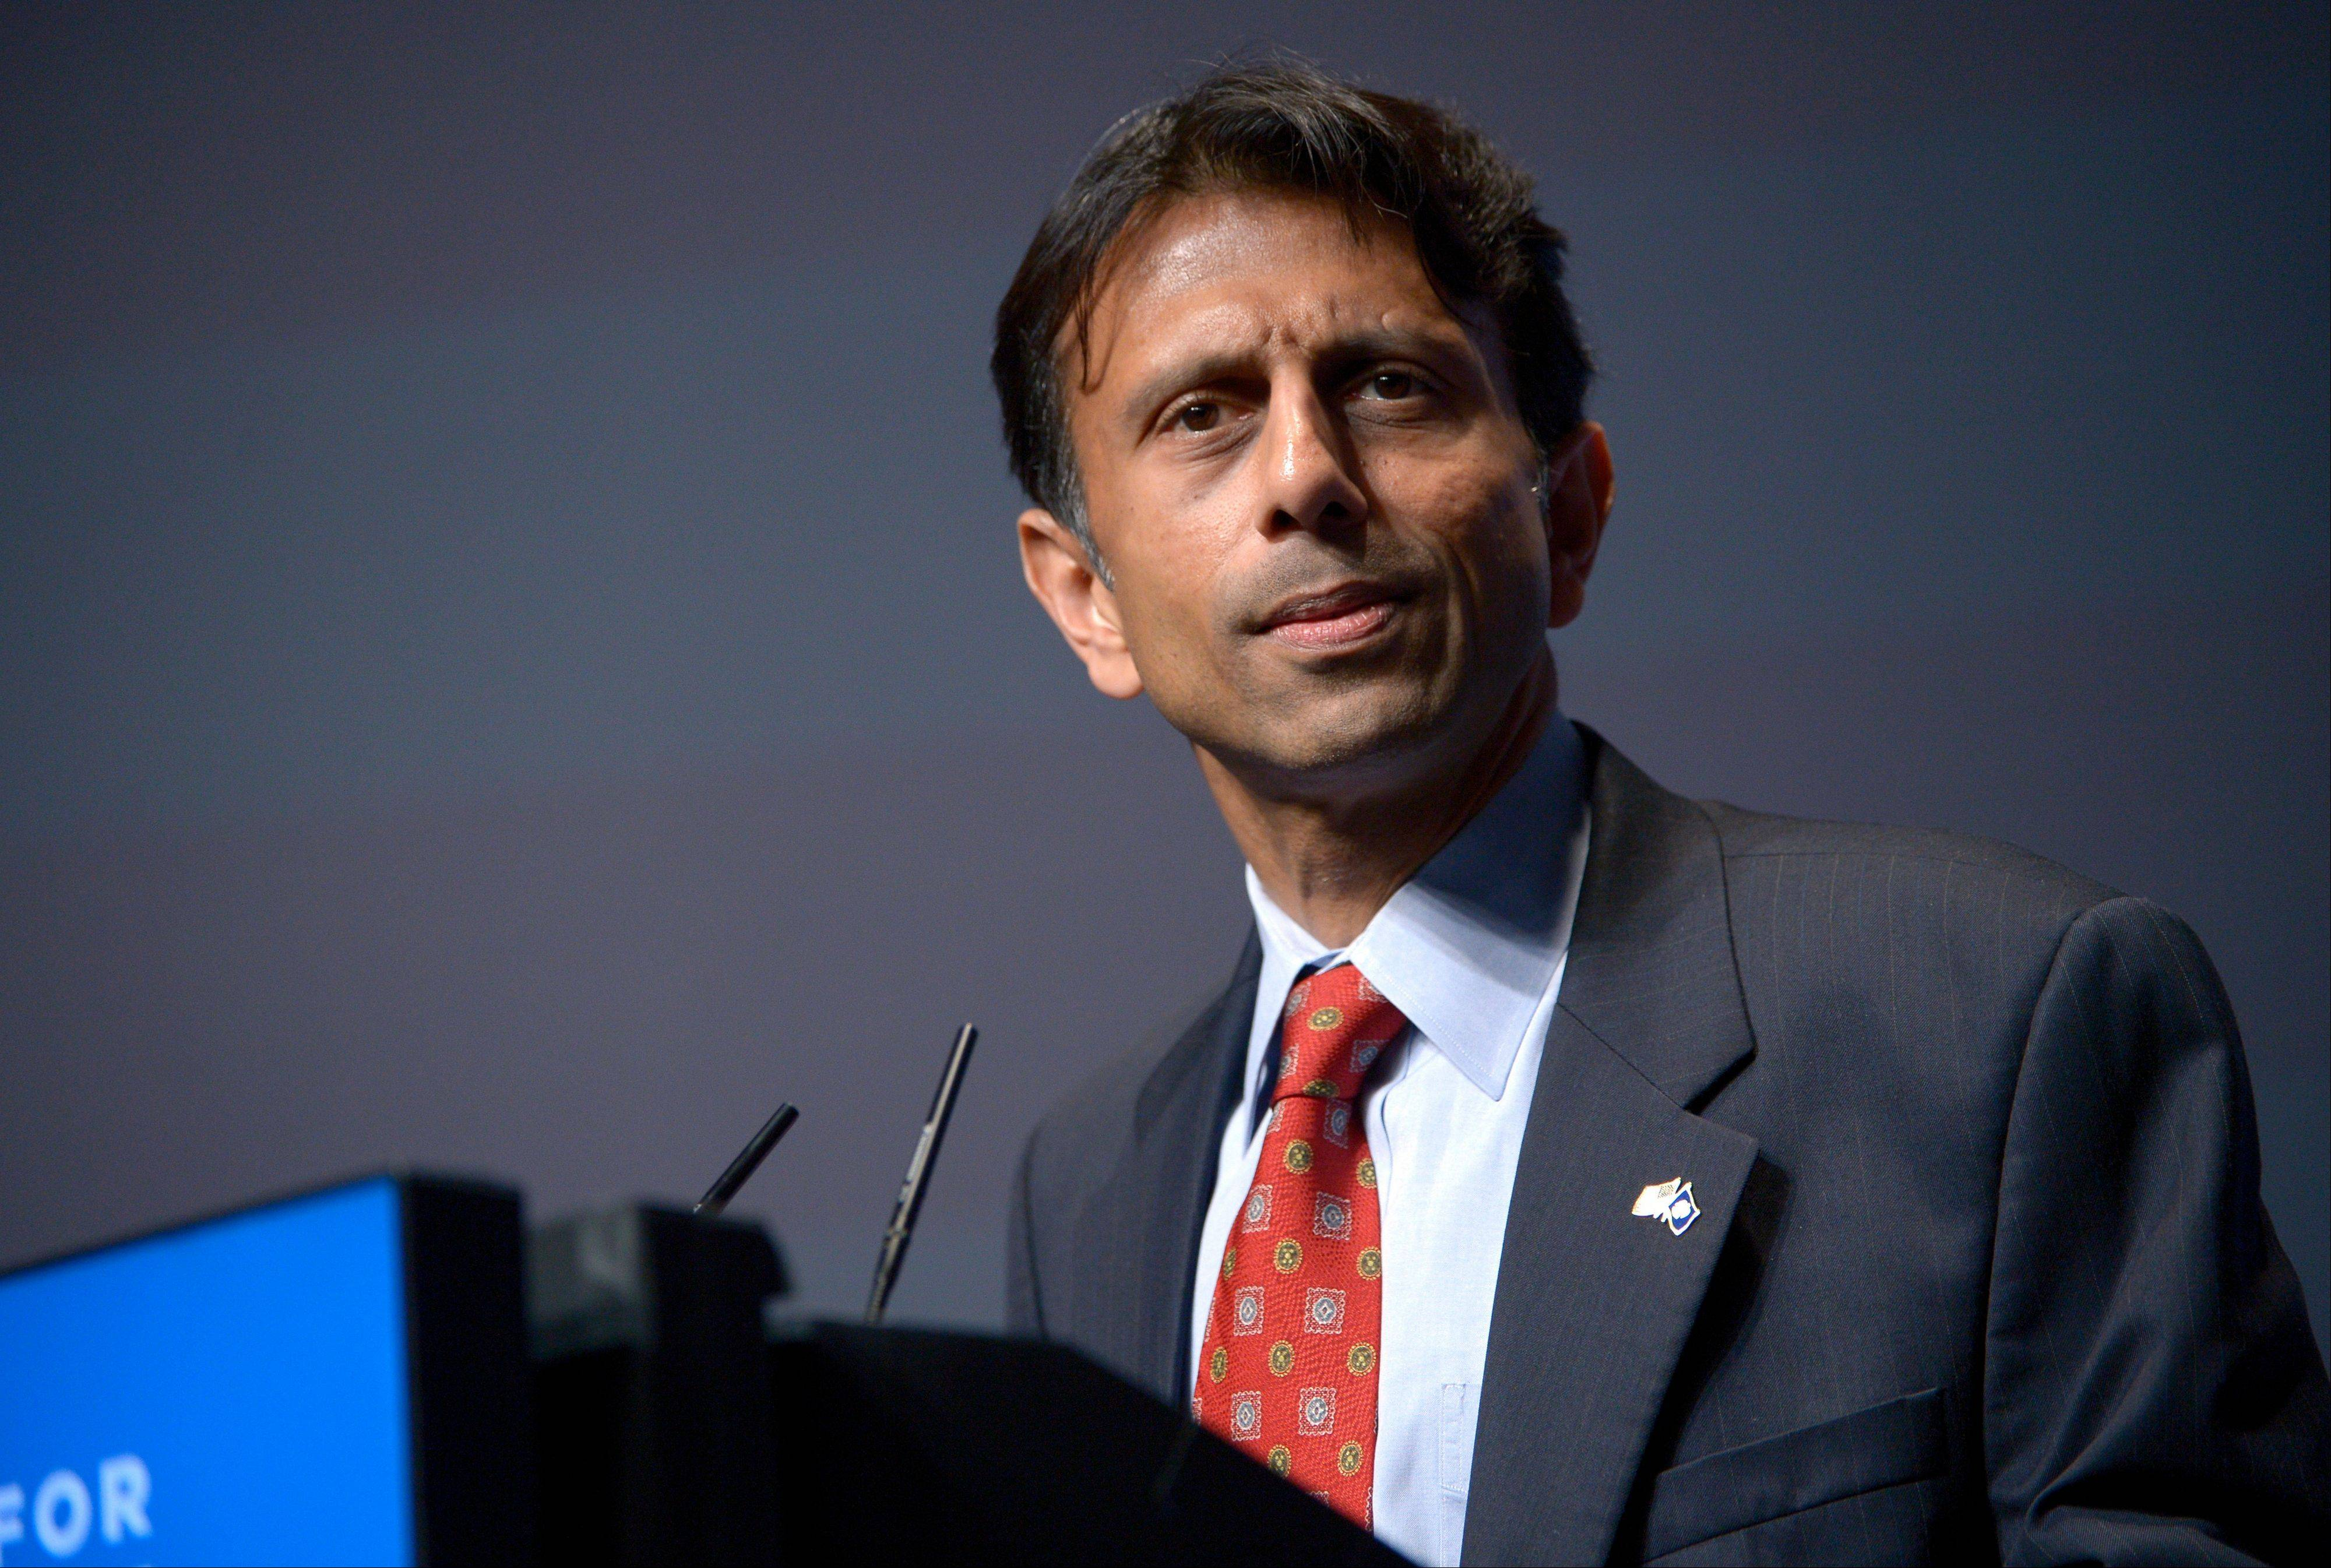 �Republican governors are not going to take it anymore,� says Louisiana Gov. Bobby Jindal, among those state leaders and potential presidential candidates using the shutdown to try to position themselves as outsiders at a time of voter disgust with Congress and anyone connected with Washington.